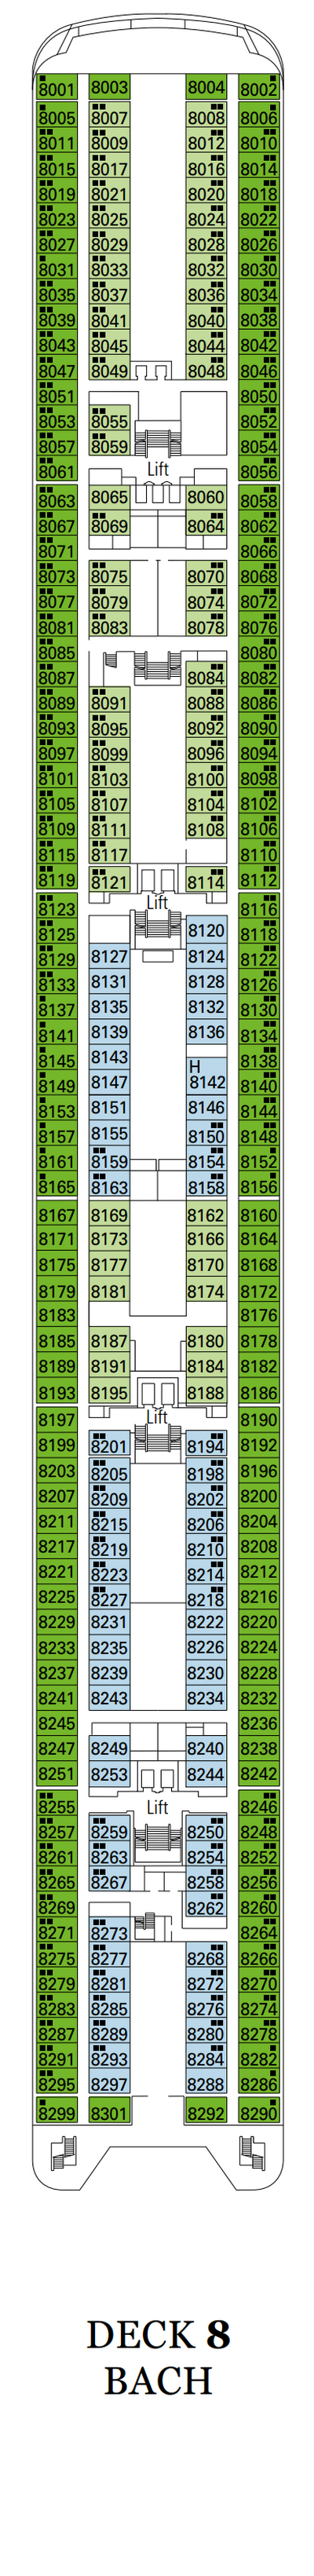 MSC Sinfonia Bach Deck 8 layout